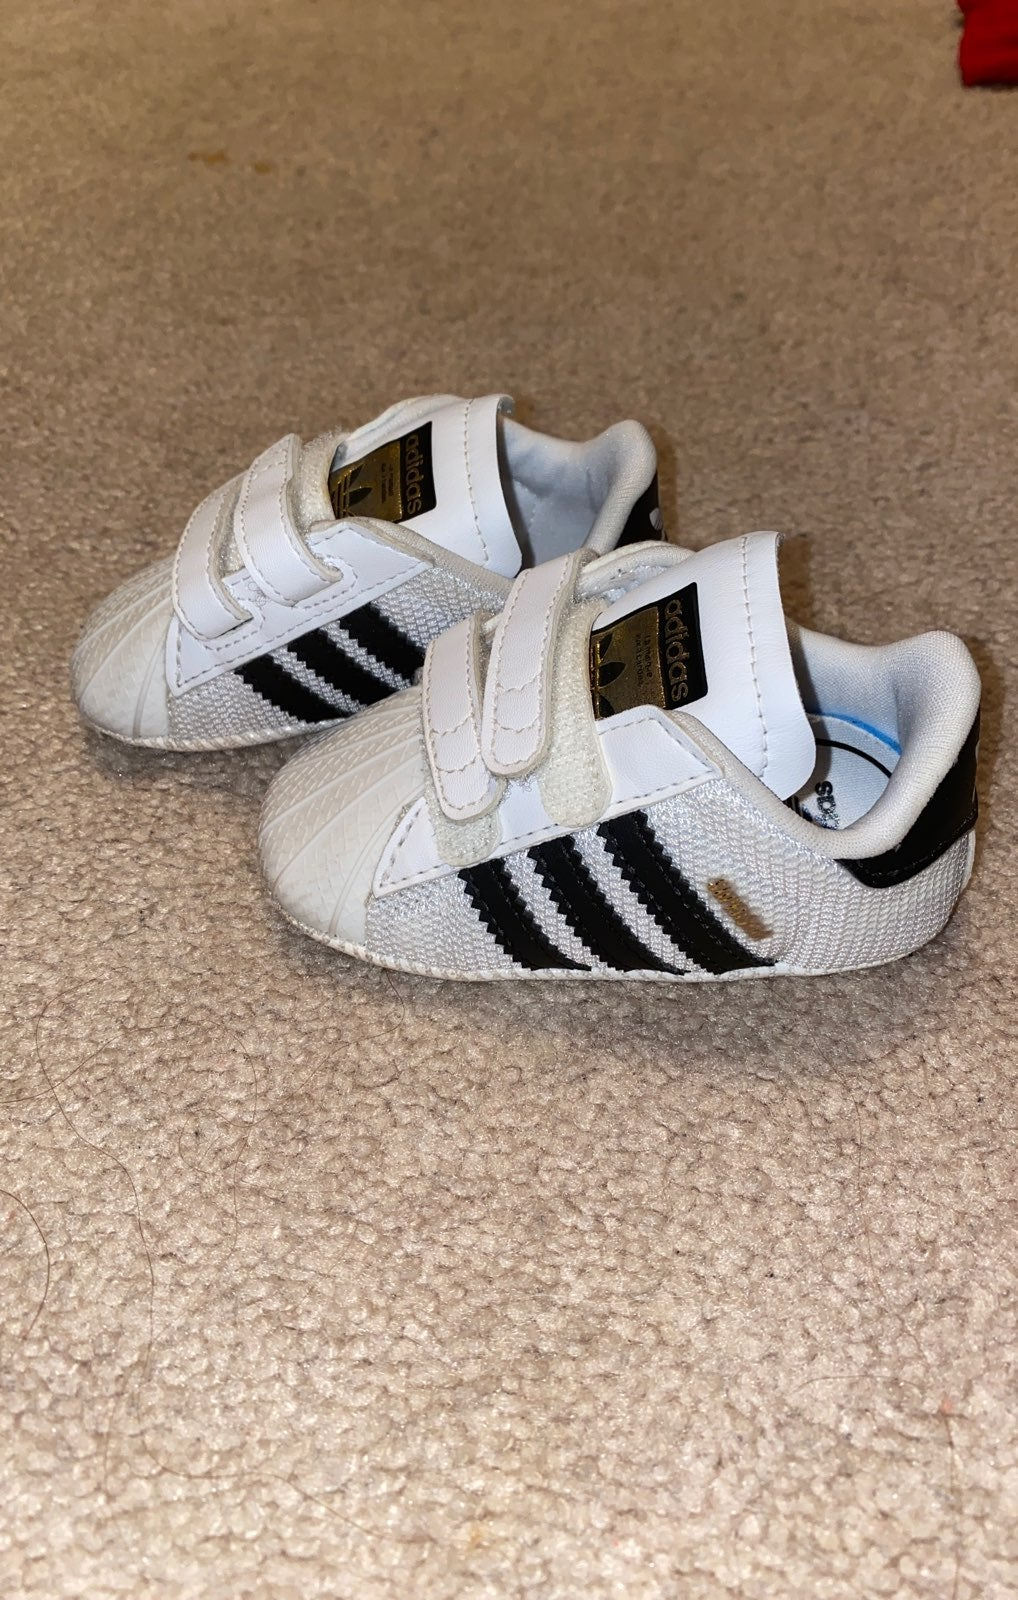 Adidas baby shoes size 2